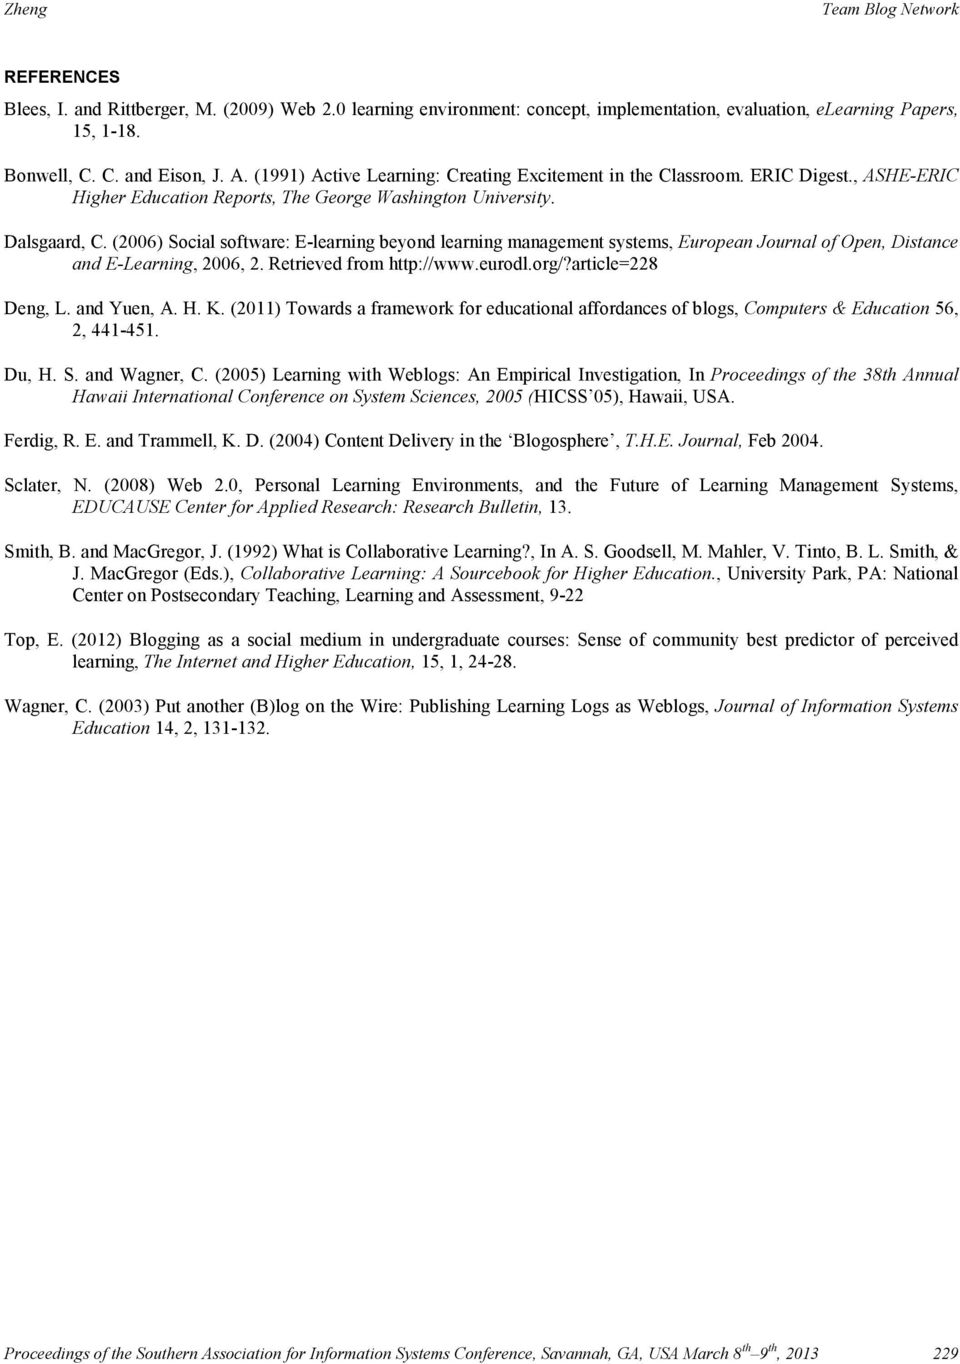 (2006) Social software: E-learning beyond learning management systems, European Journal of Open, Distance and E-Learning, 2006, 2. Retrieved from http://www.eurodl.org/?article=228 Deng, L.